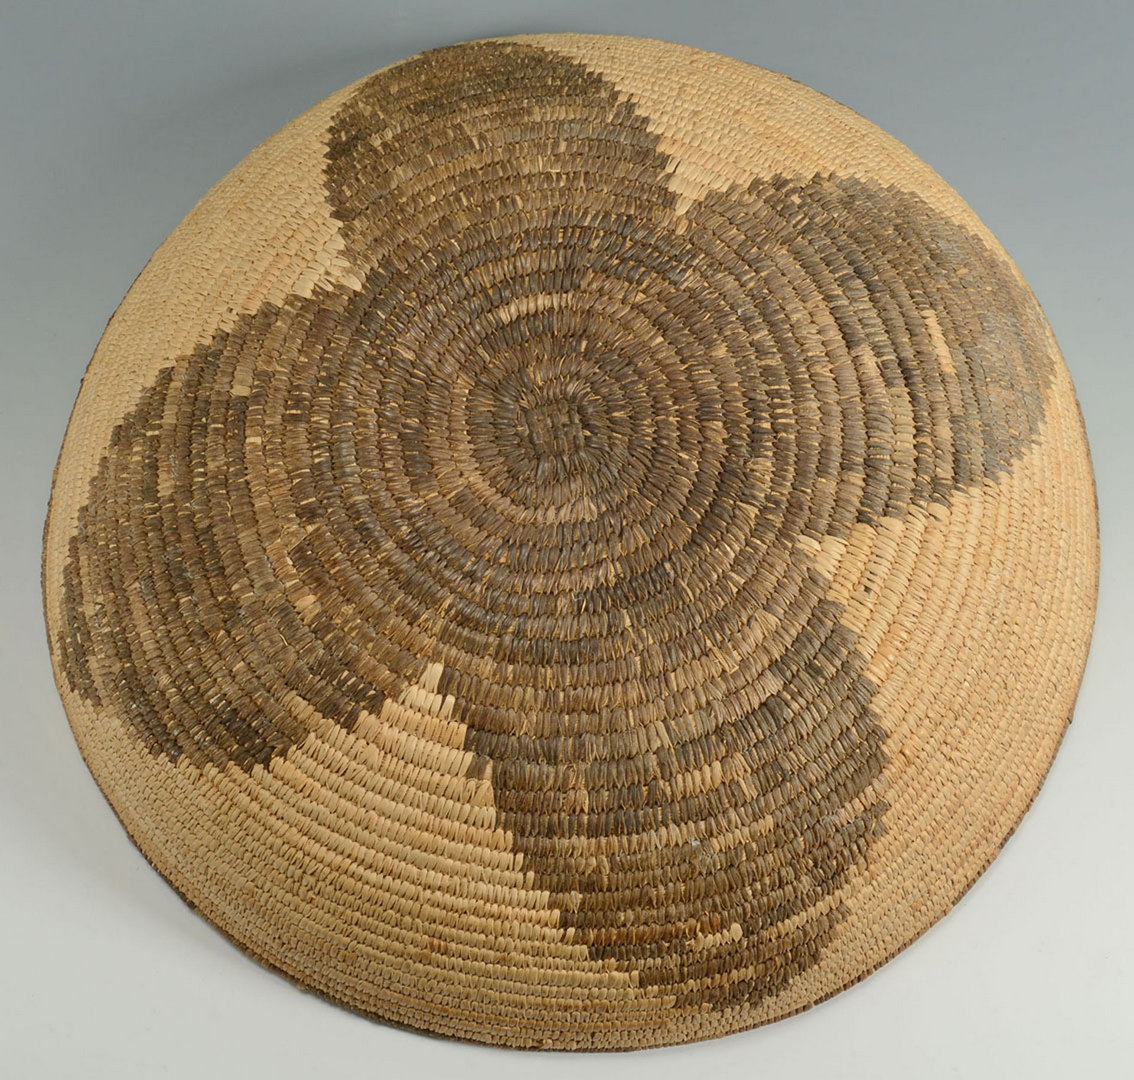 Lot 393: Native American Basket, poss. Apache or Pima